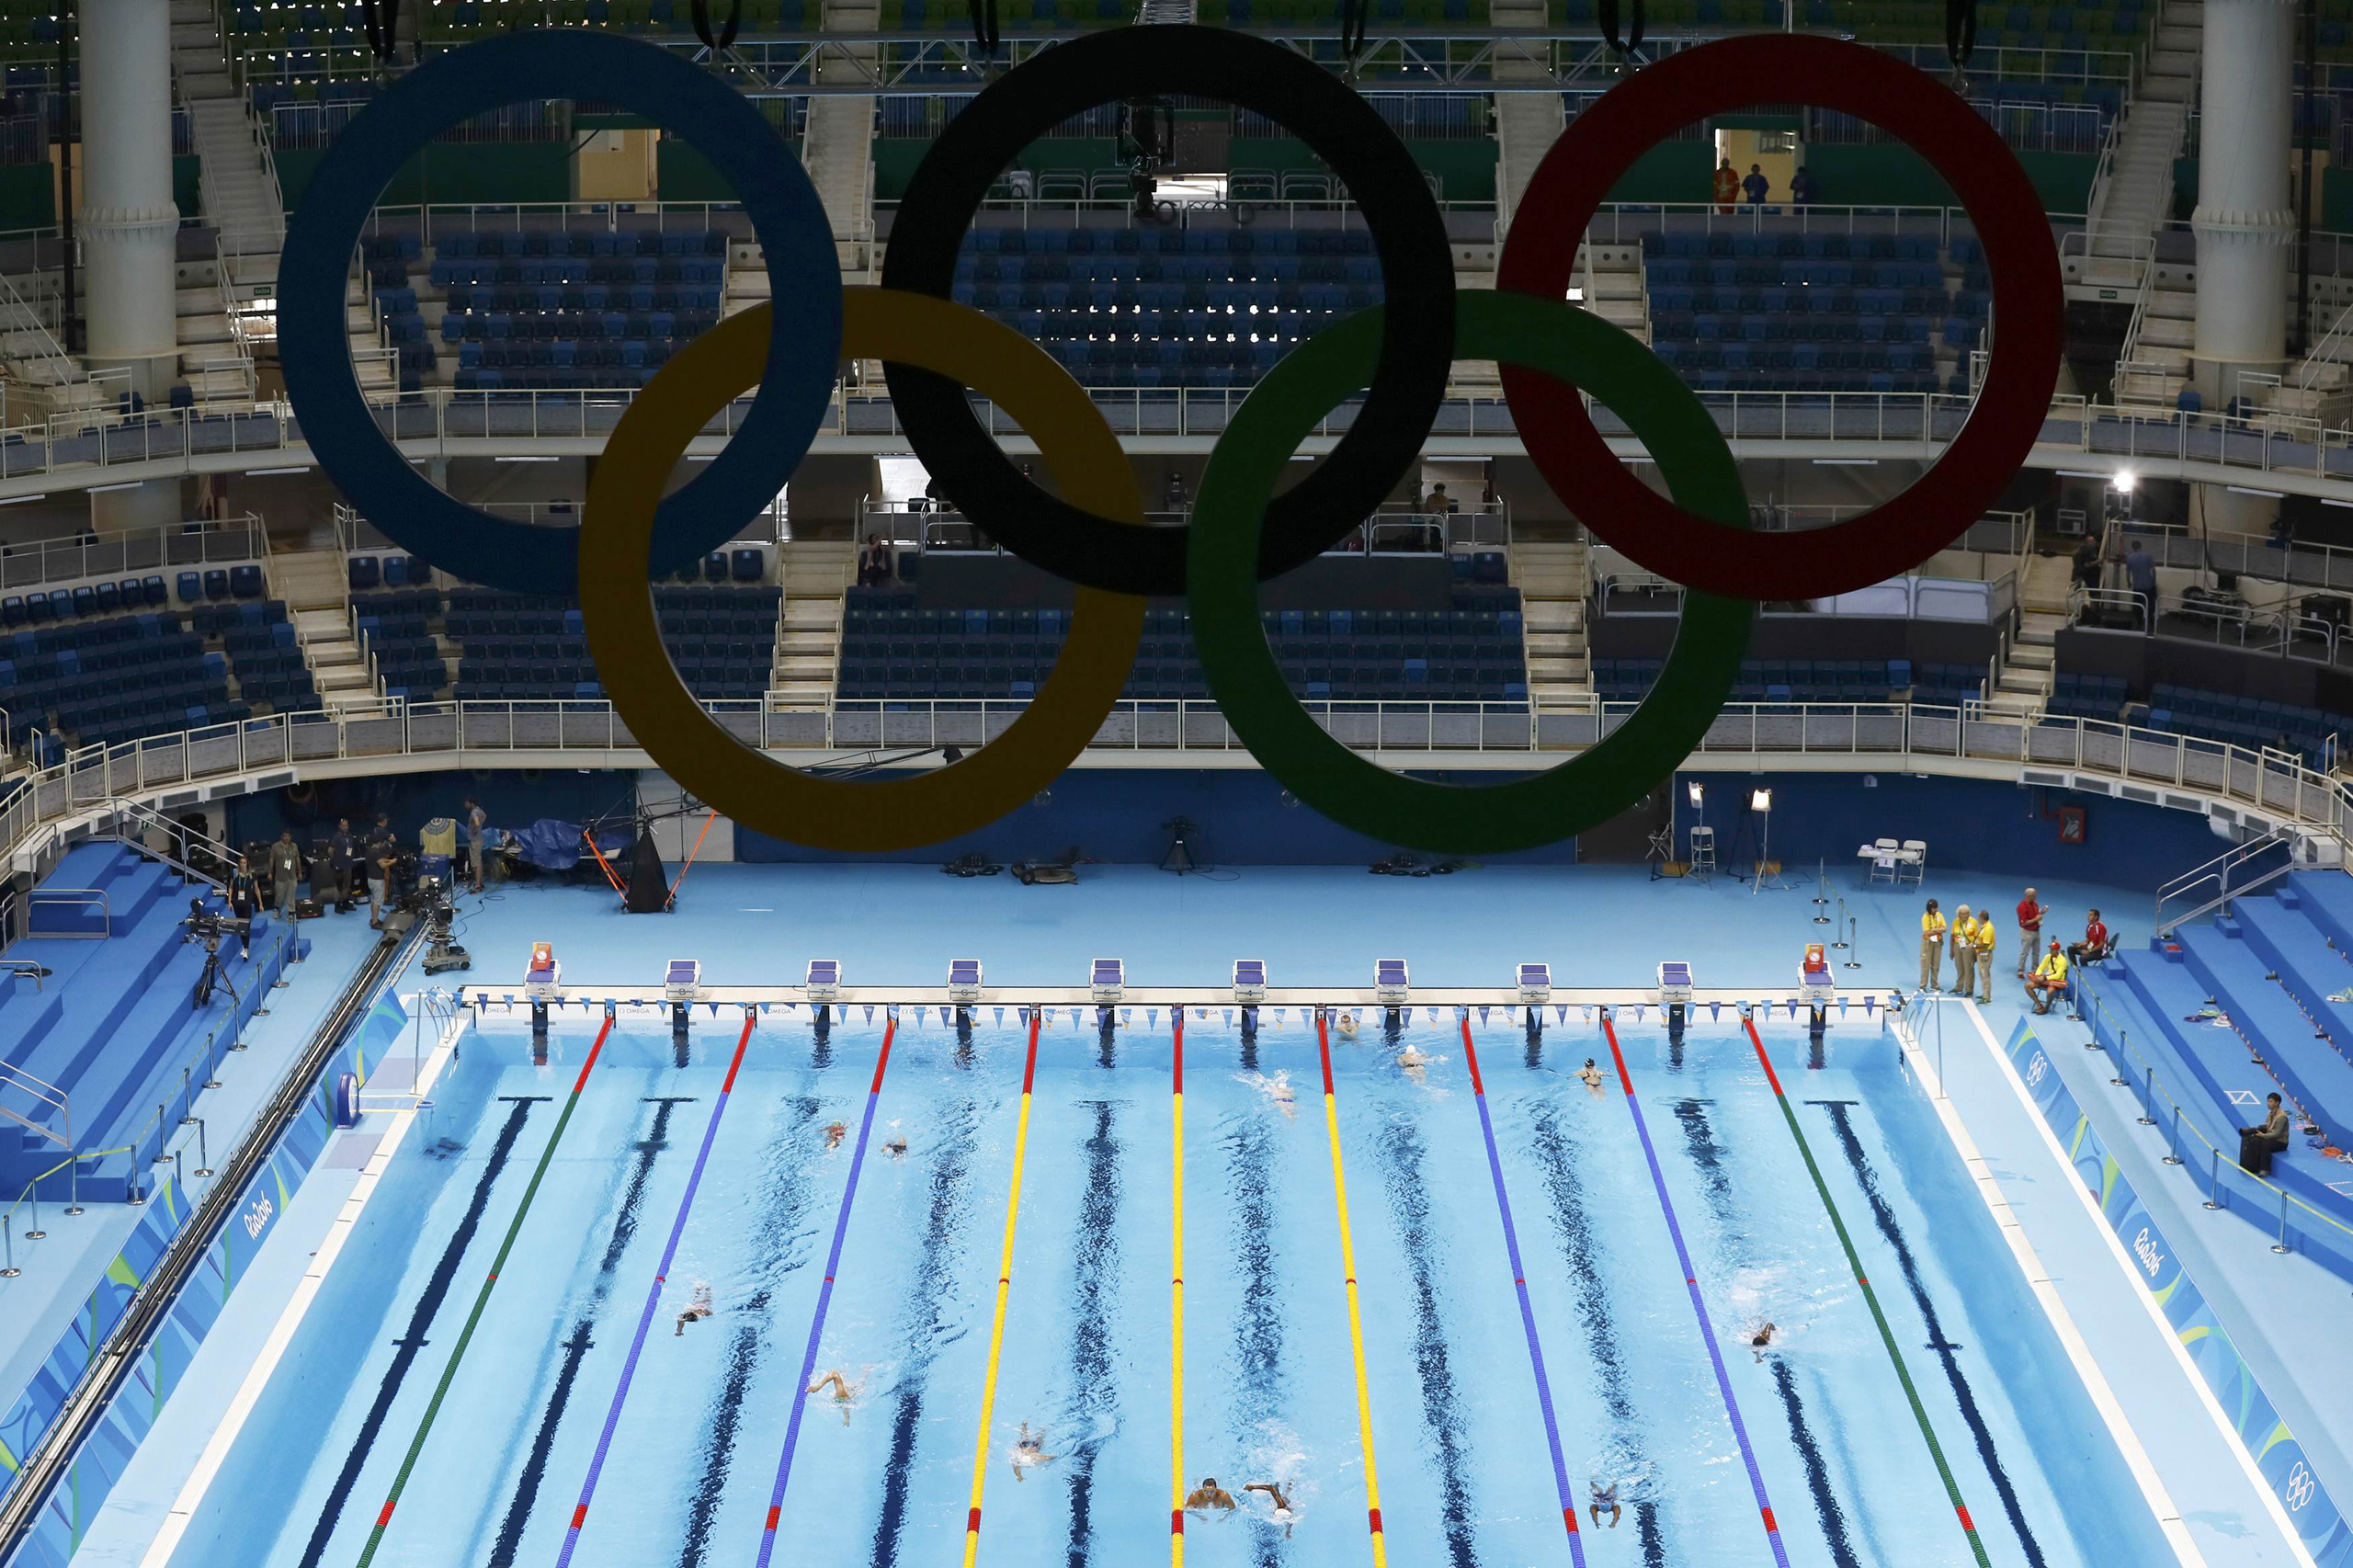 General view of the Olympic swimming venue in Rio de Janeiro on Aug. 02, 2016.